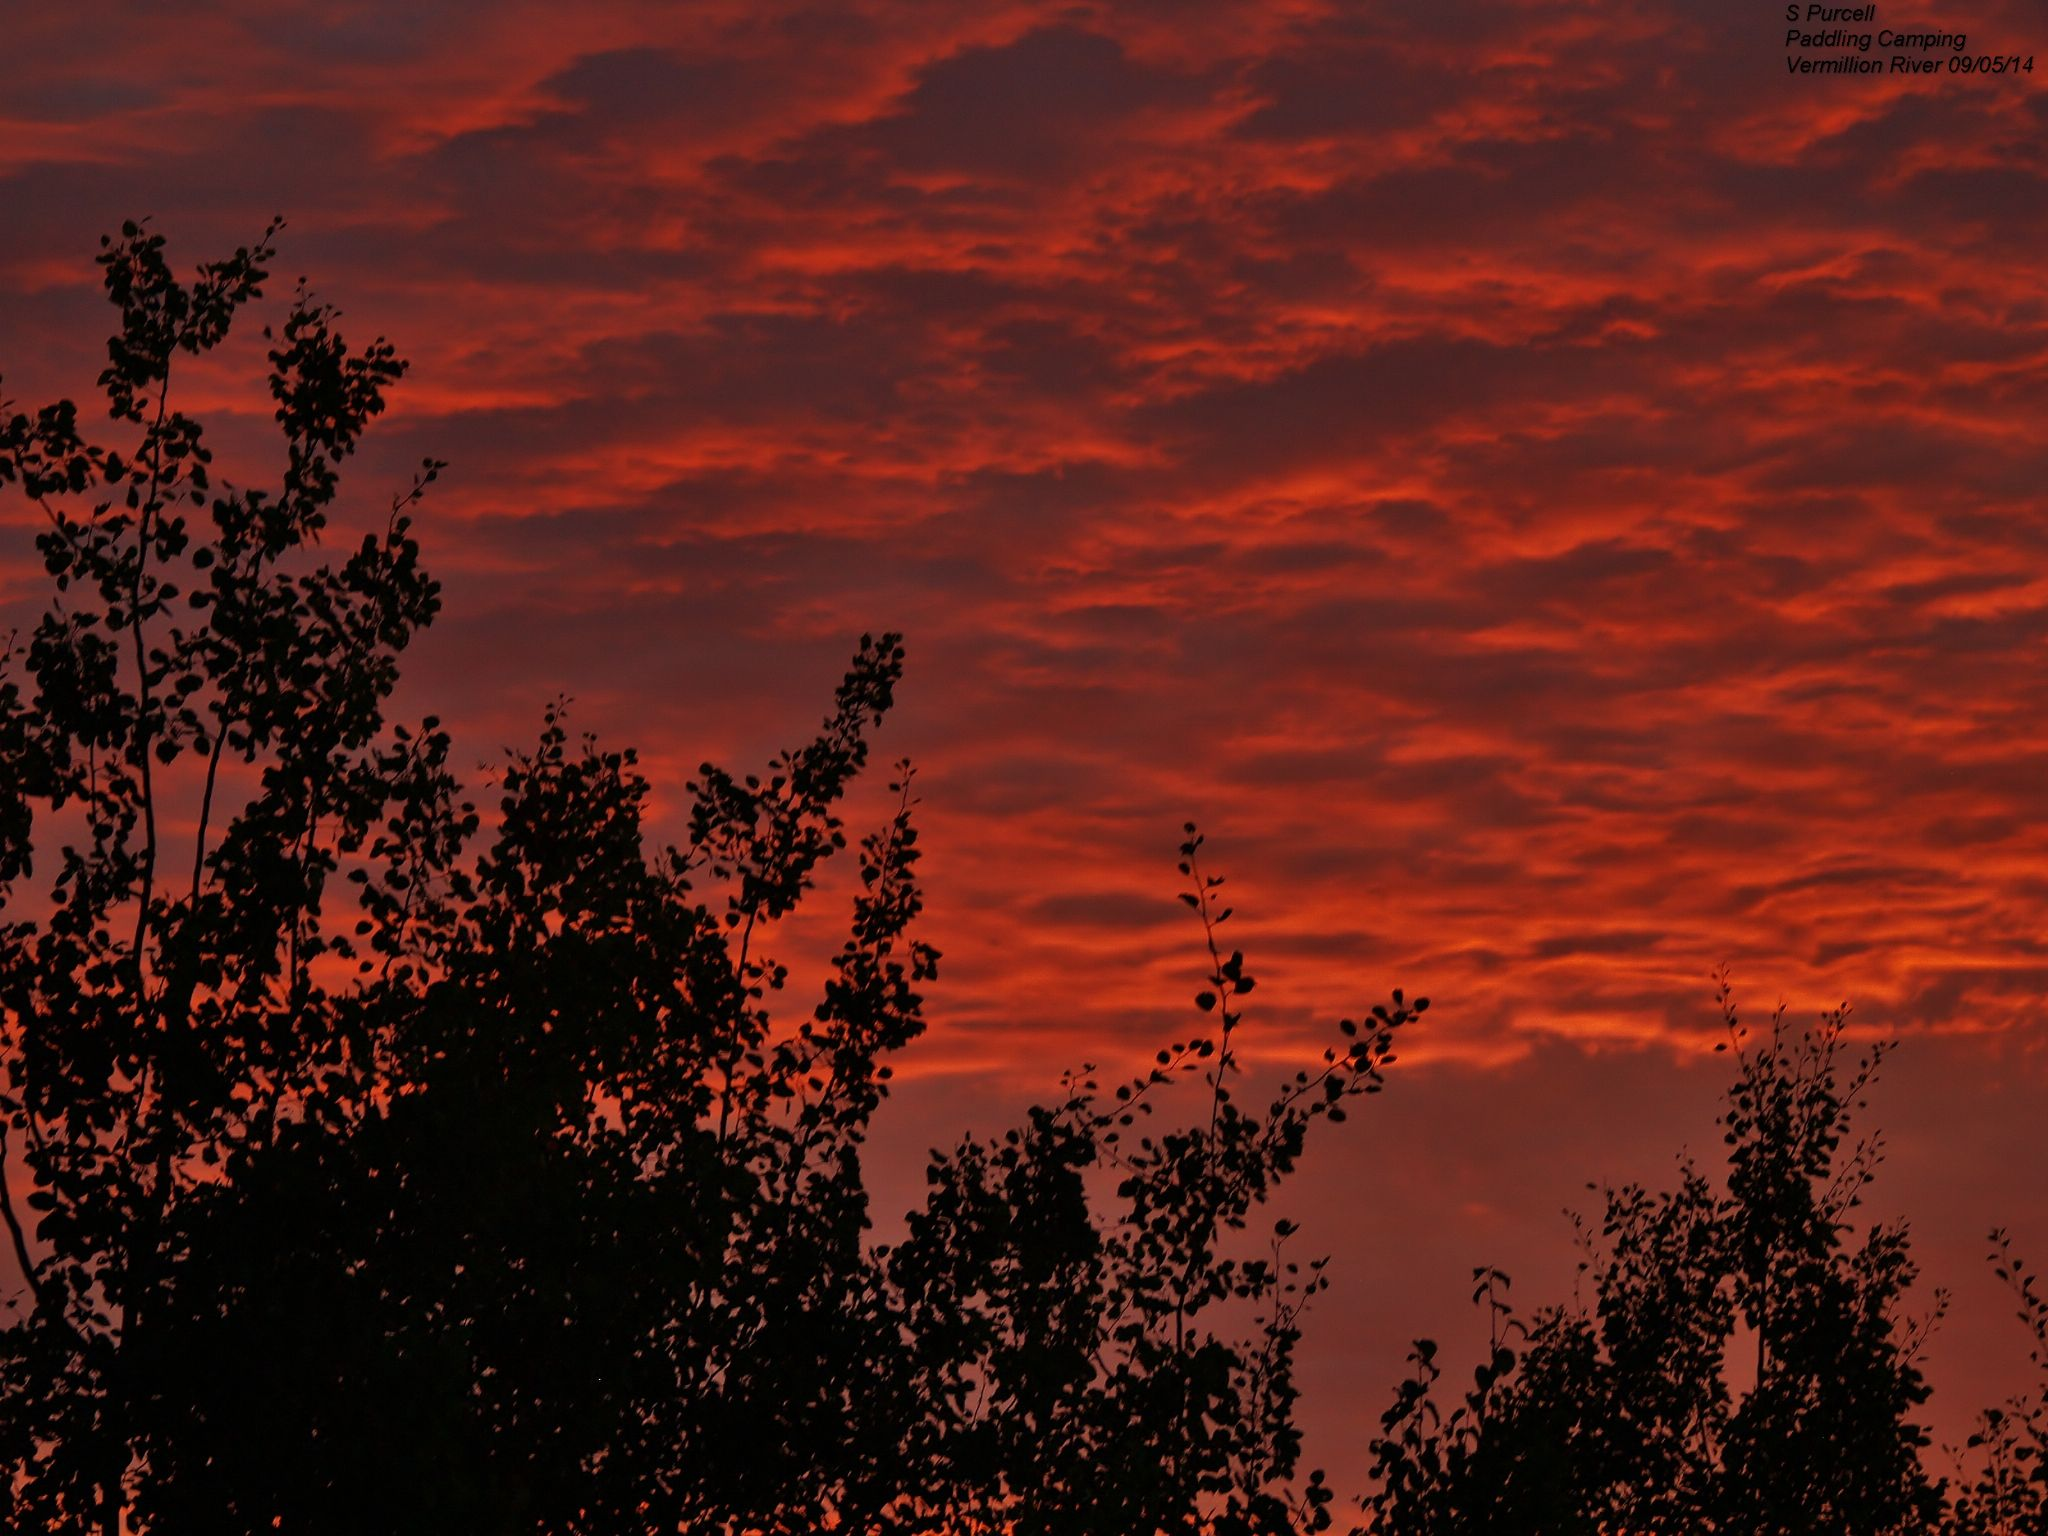 Under a Vermillion River sky by Sean Purcell